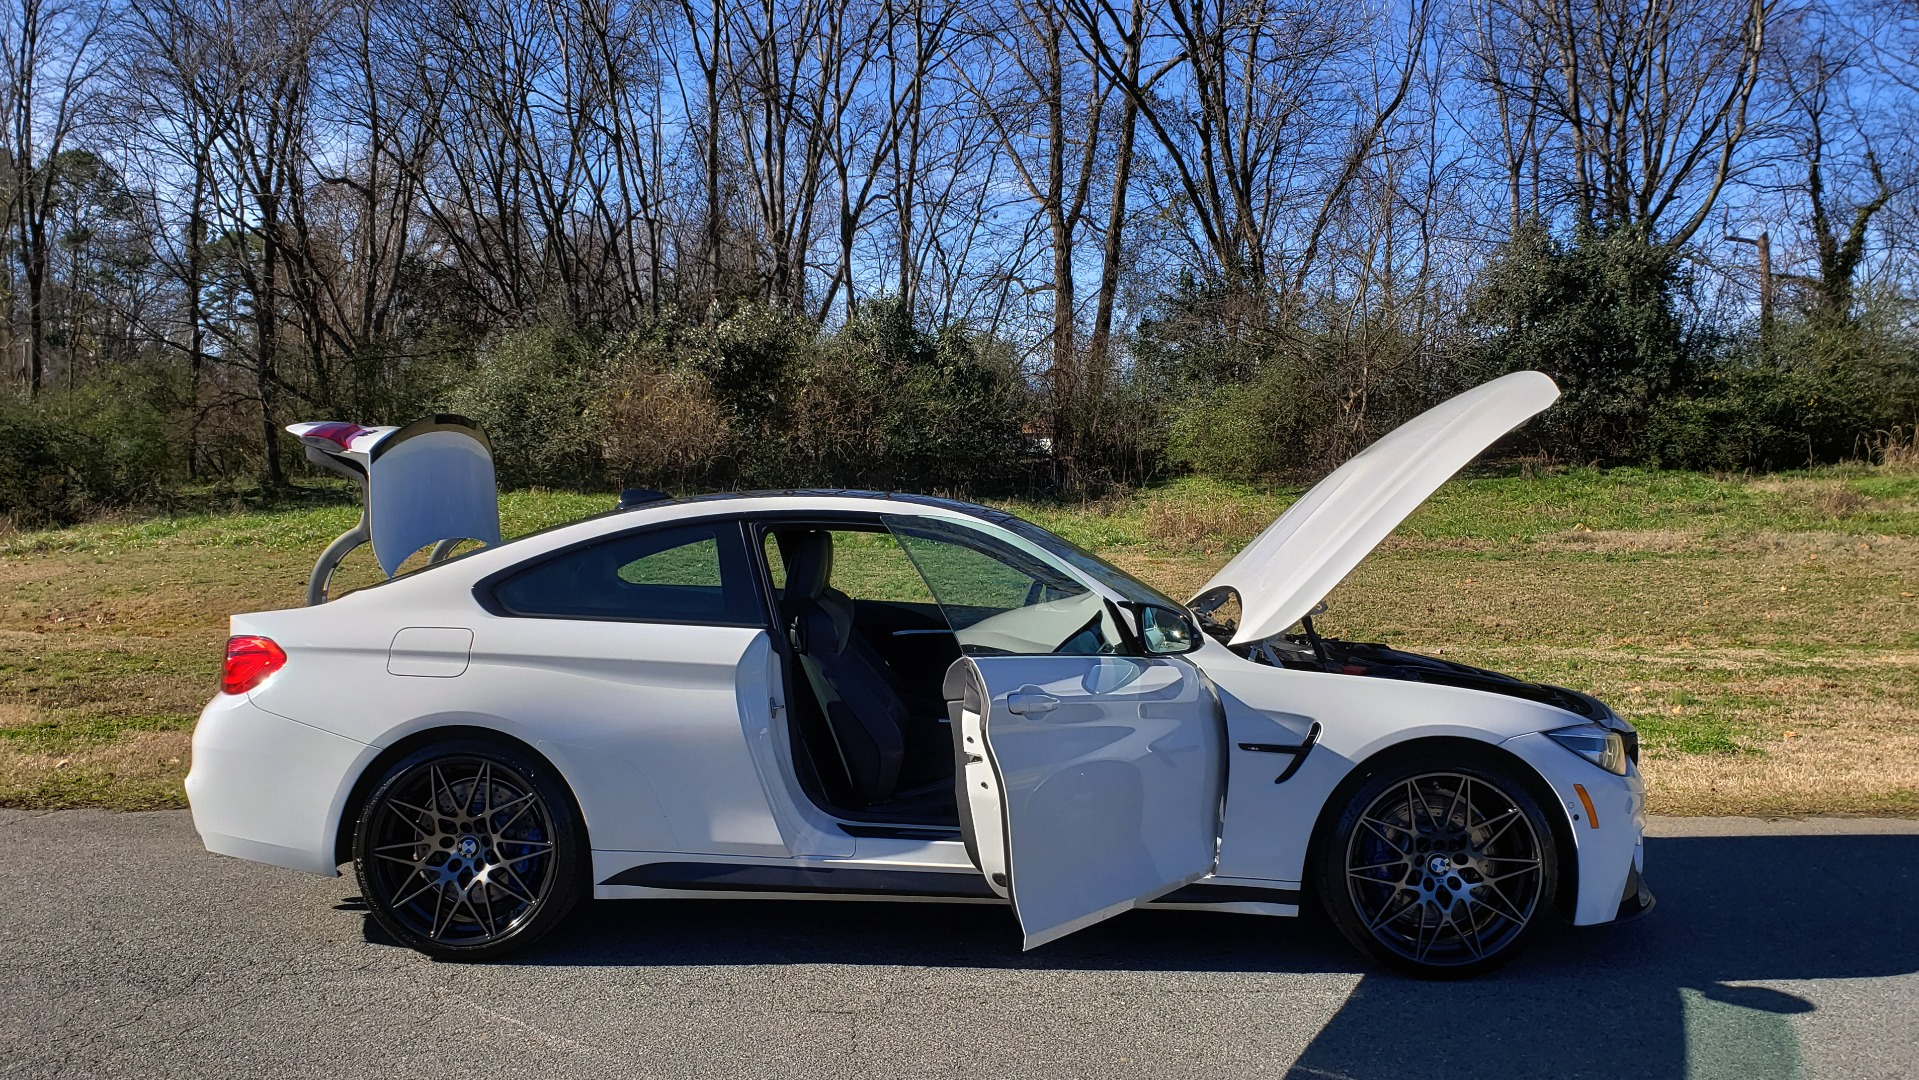 Used 2018 BMW M4 COMP PKG / EXEC / M-DRIVER / PARK CNTRL / ACTIVE BLIND SPOT for sale Sold at Formula Imports in Charlotte NC 28227 18